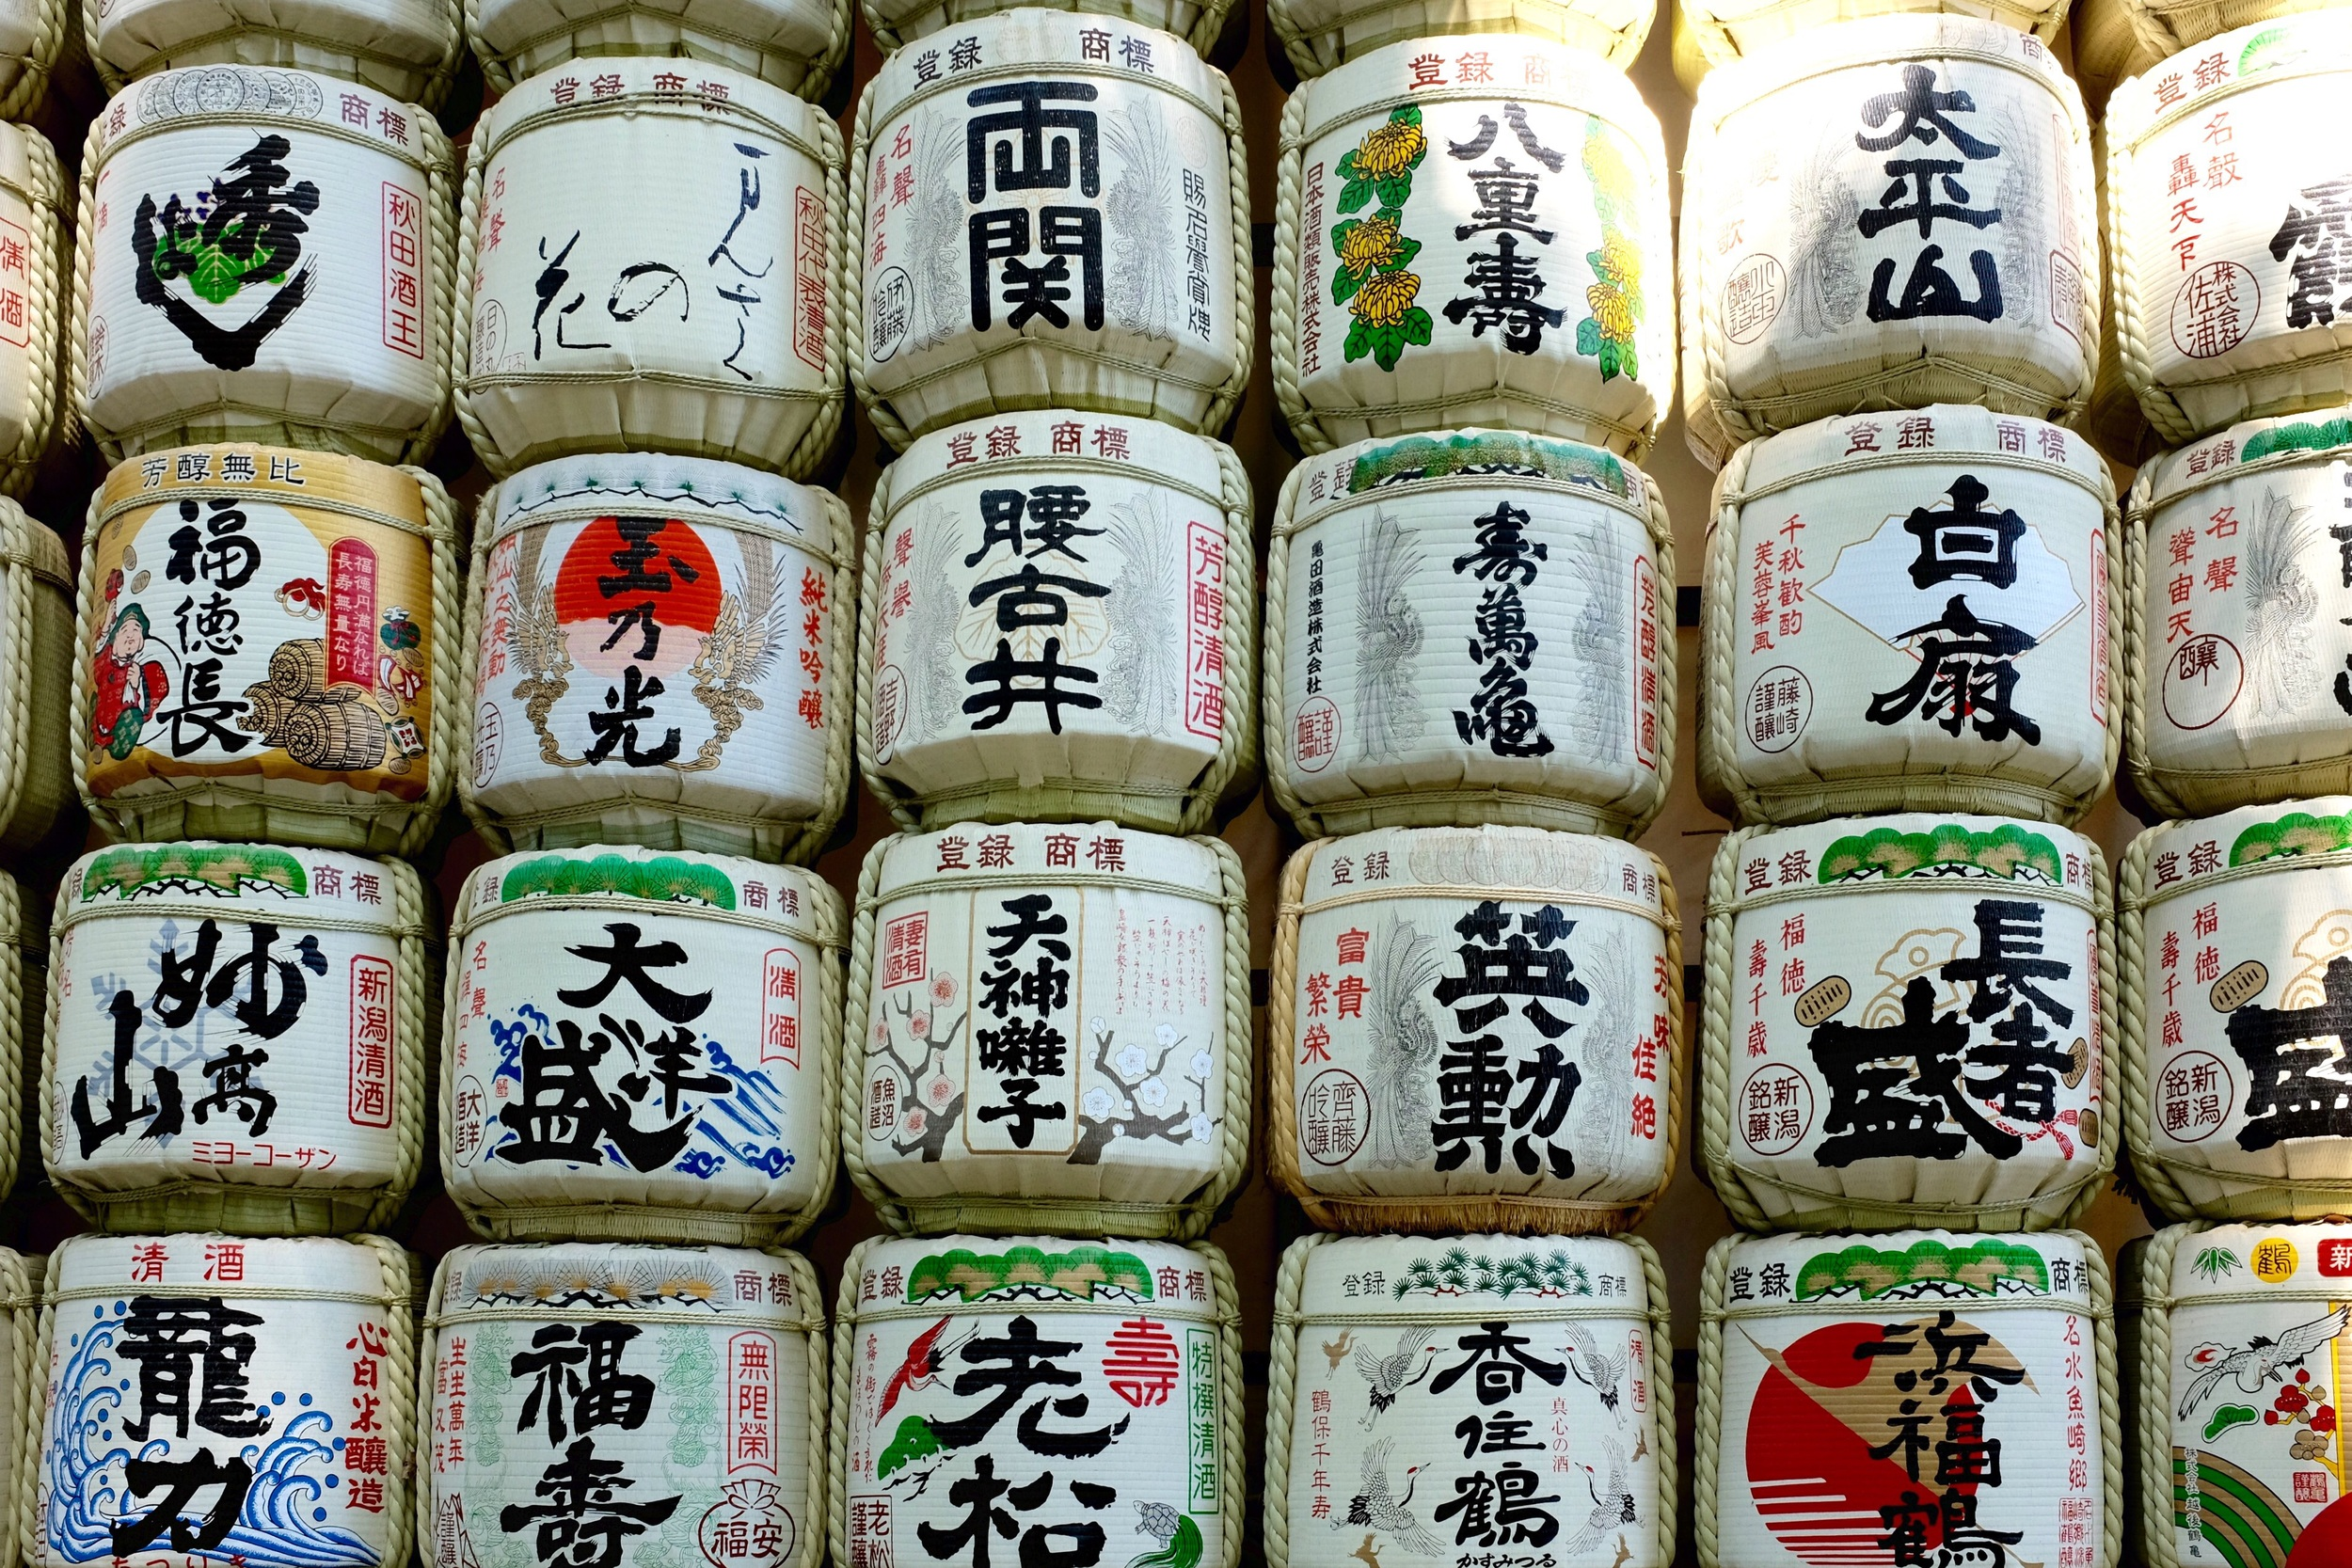 Barrels of sake donated to the shrine. Fujifilm x100t, ISO 640, f/8, 1/60 sec. Edited to fix perspective and added contrast.